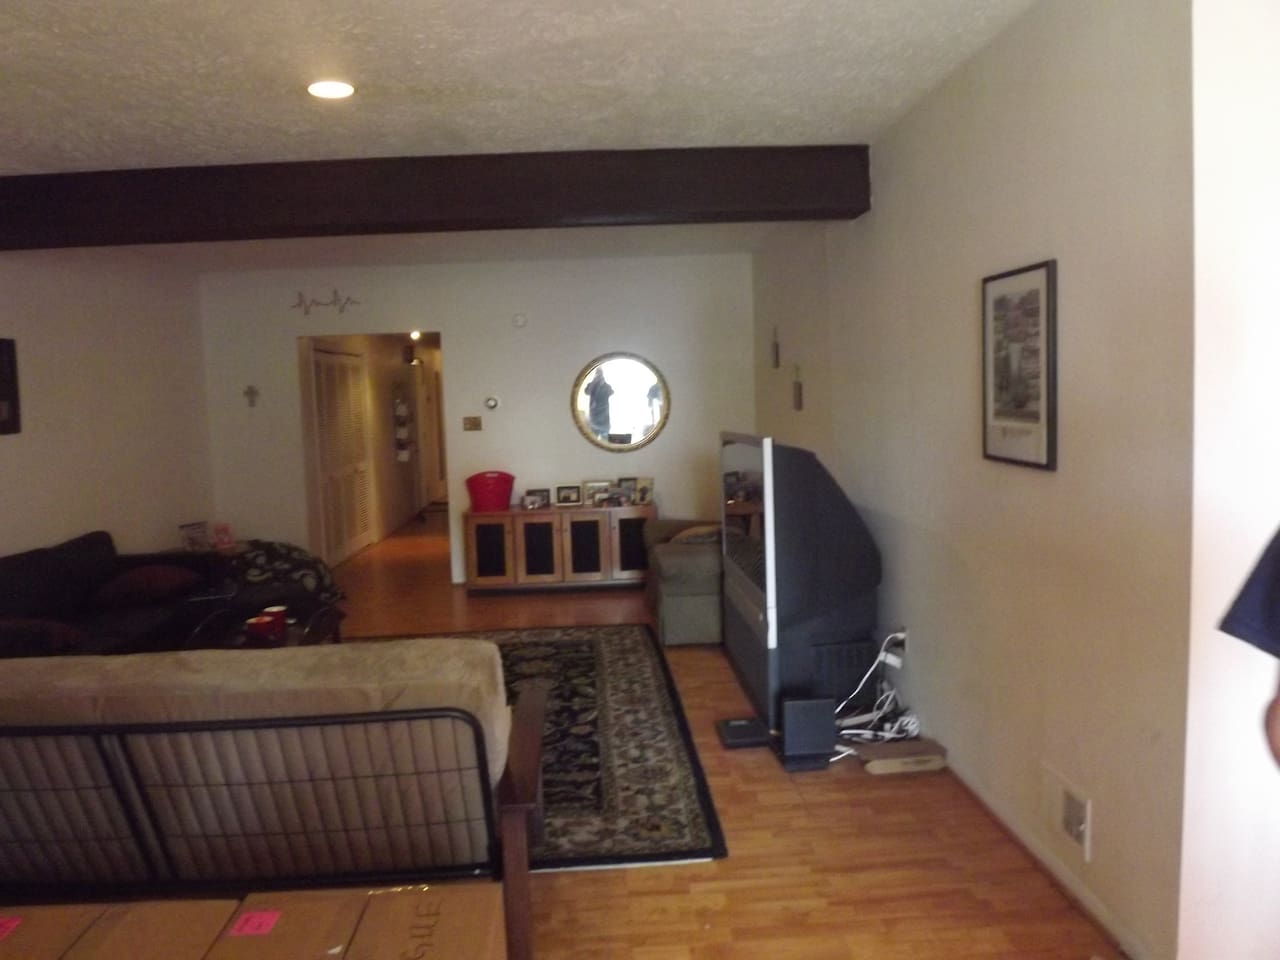 Rittenhouse Square Two Bedrooms Apartments for Rent in Philadelphia